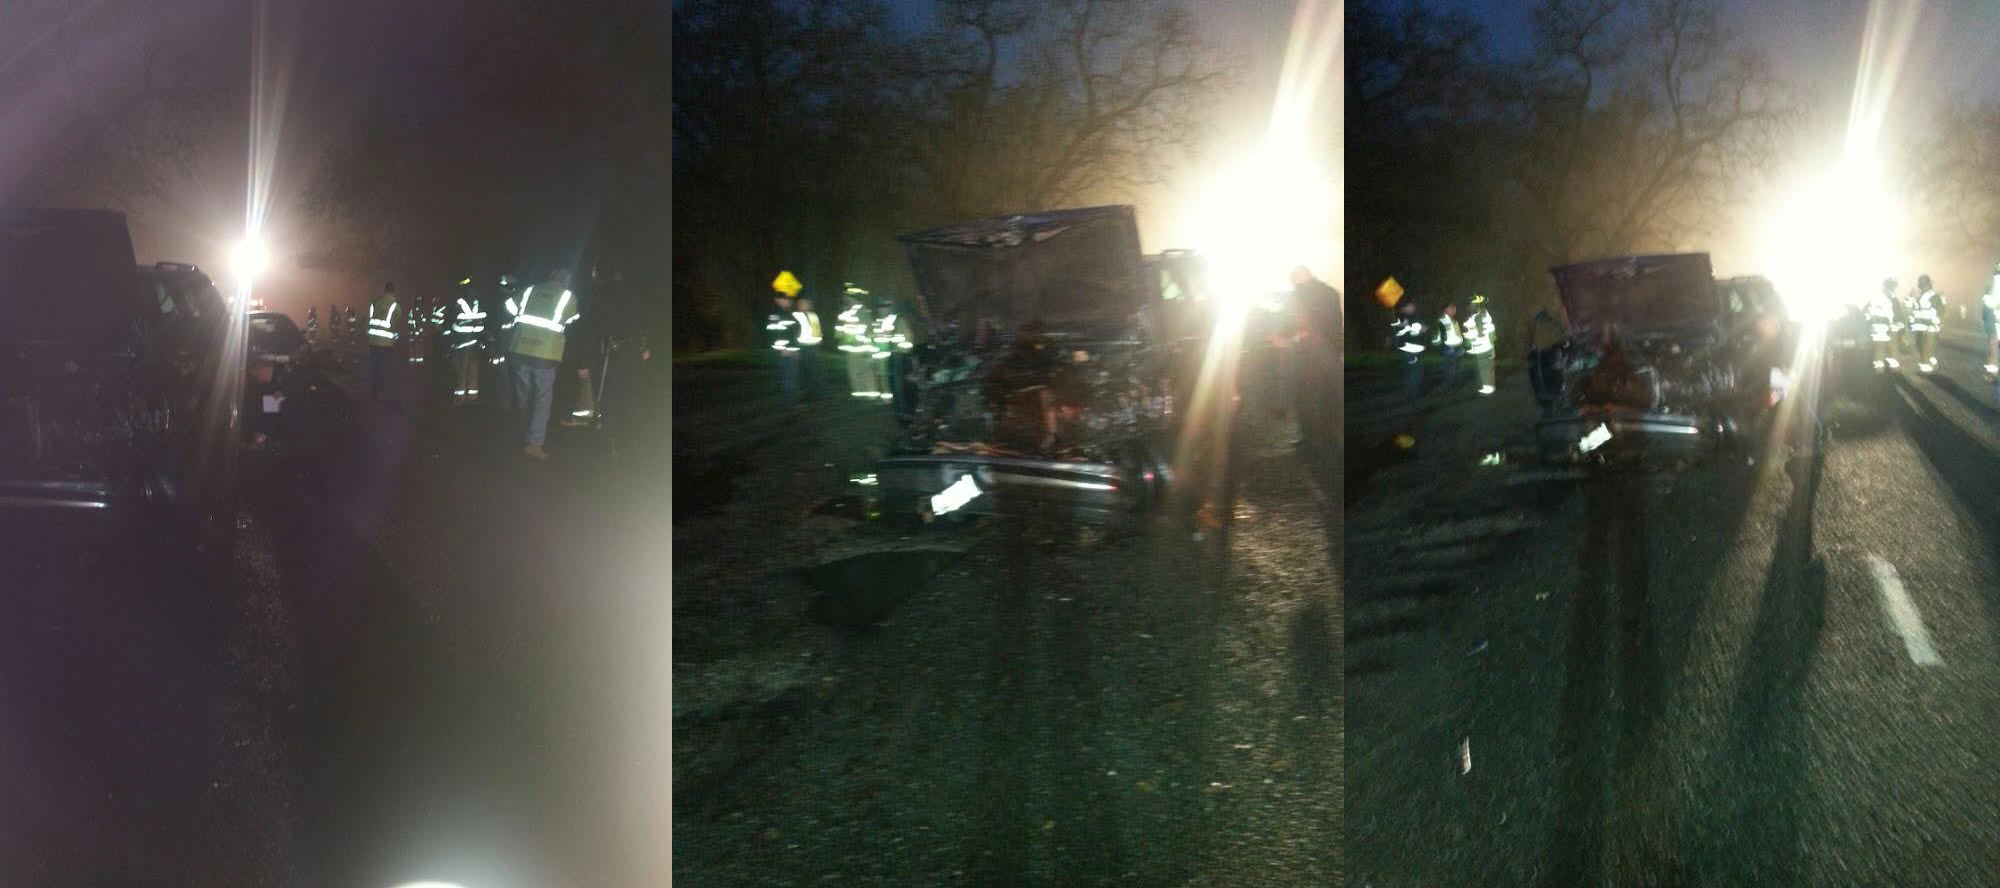 Photos taken the night of the accident show the extent of the damage to the Yukon